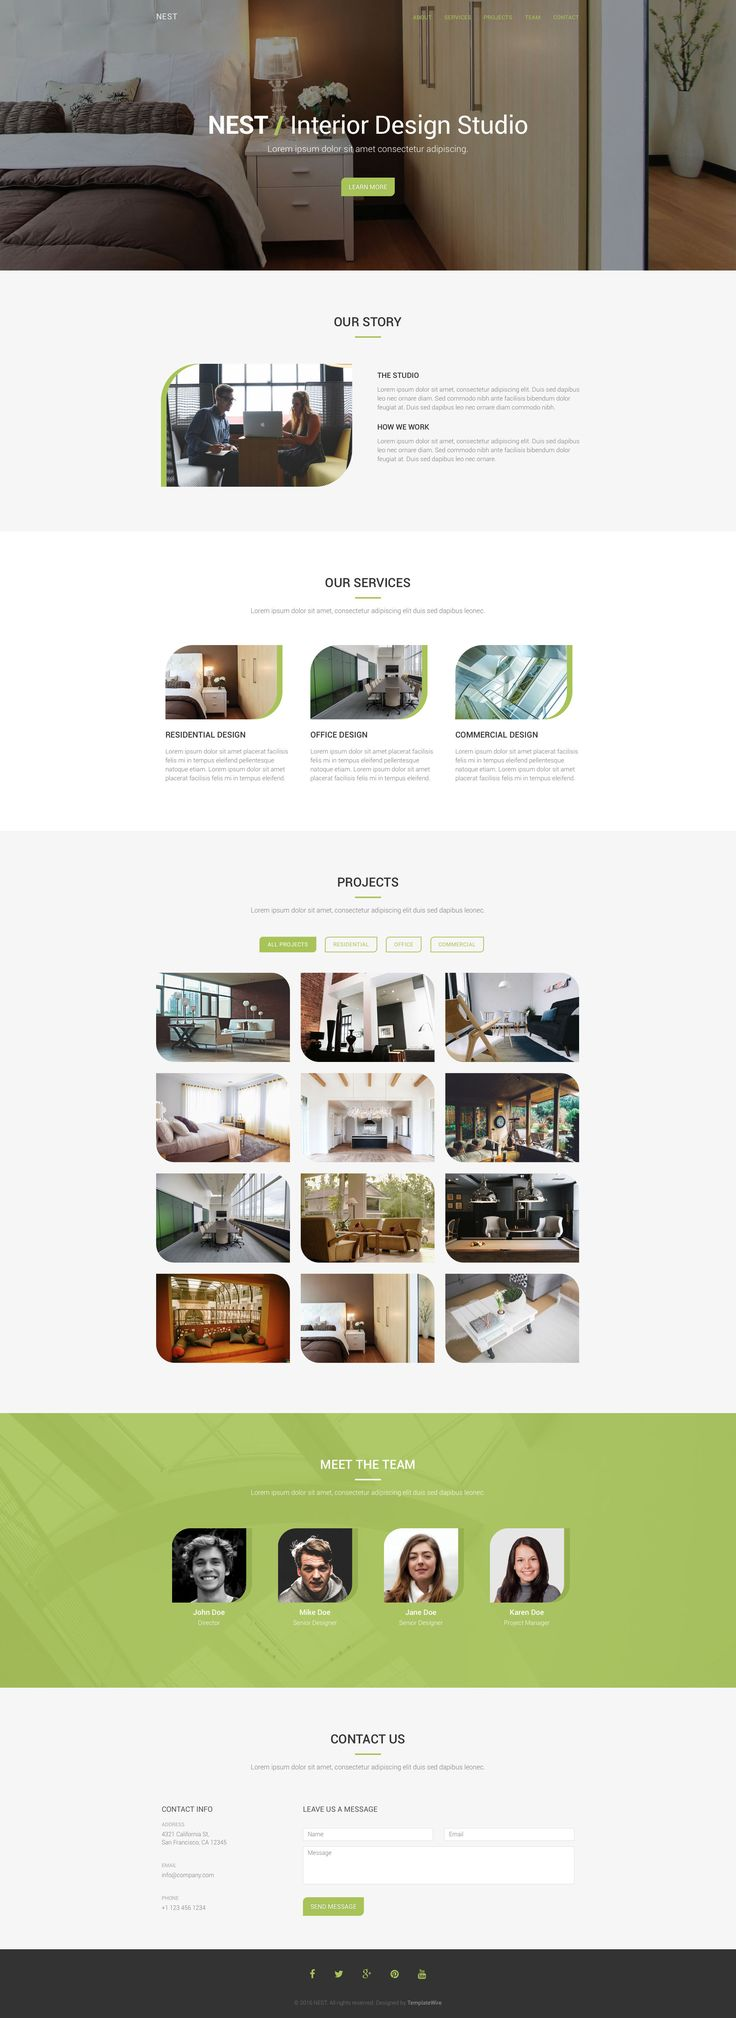 Nest Free responsive HTML5 Bootstrap Landing page template